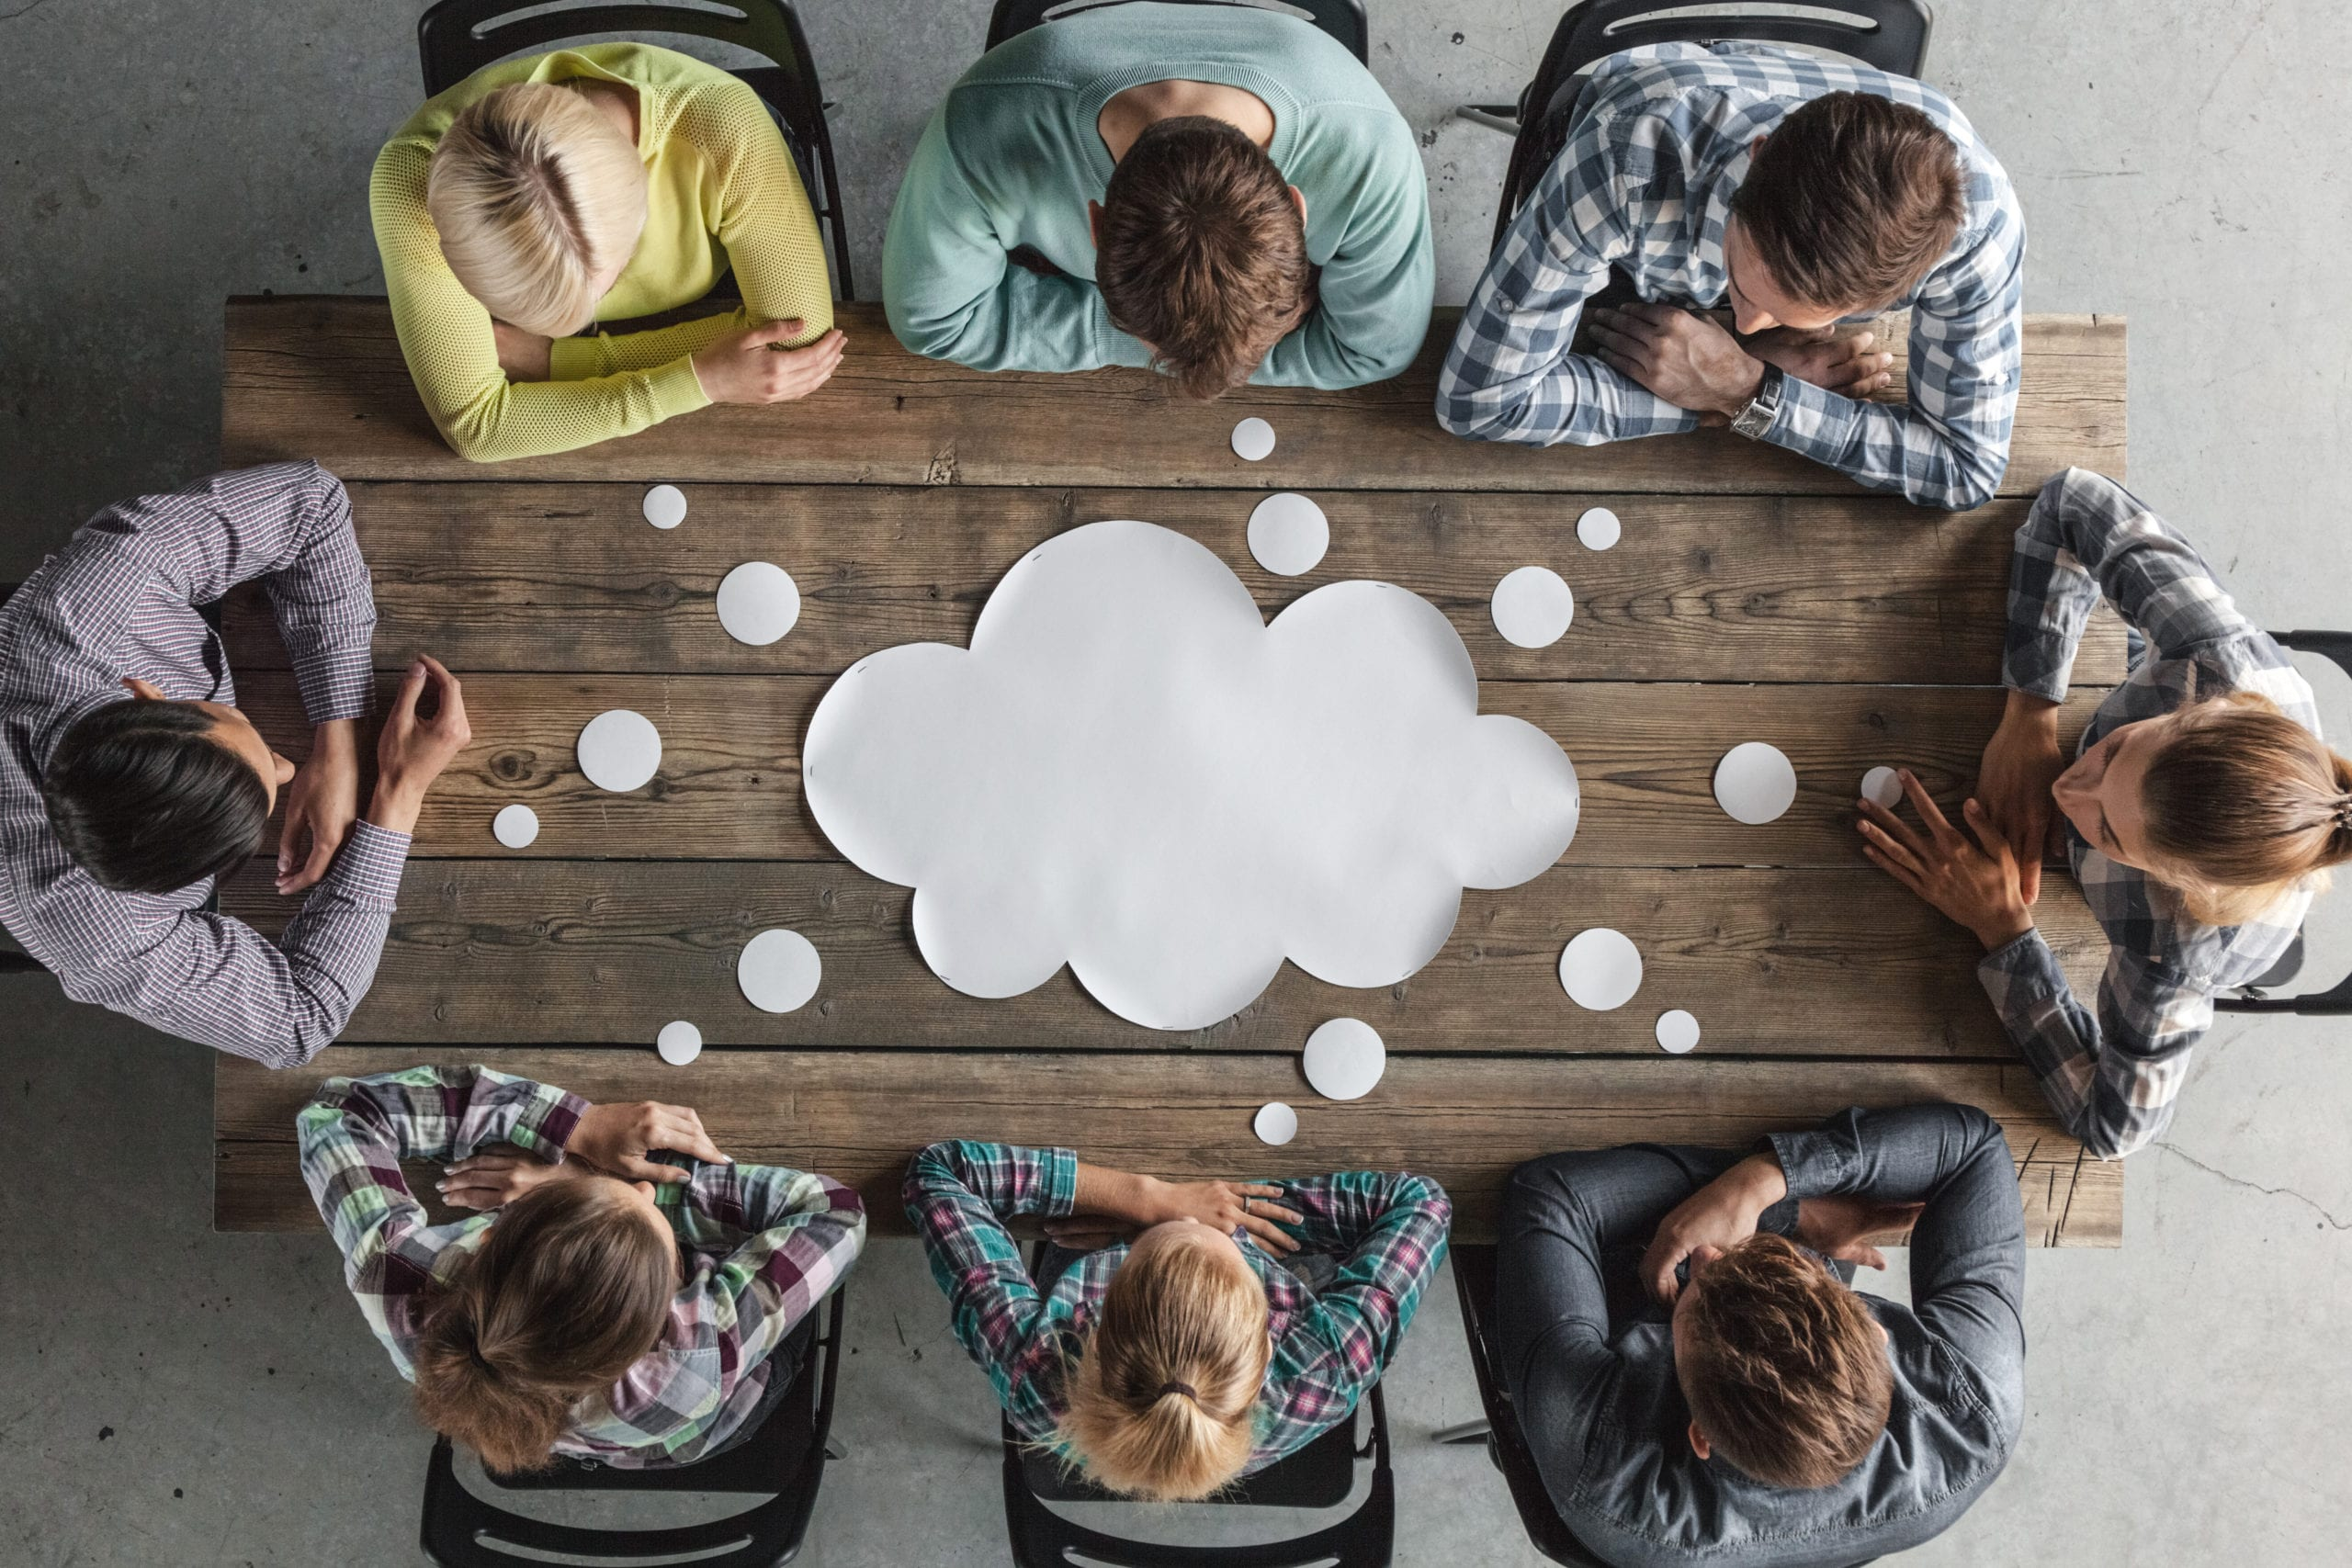 A team of eight seated in a meeting around a table looking at a paper idea bubble.